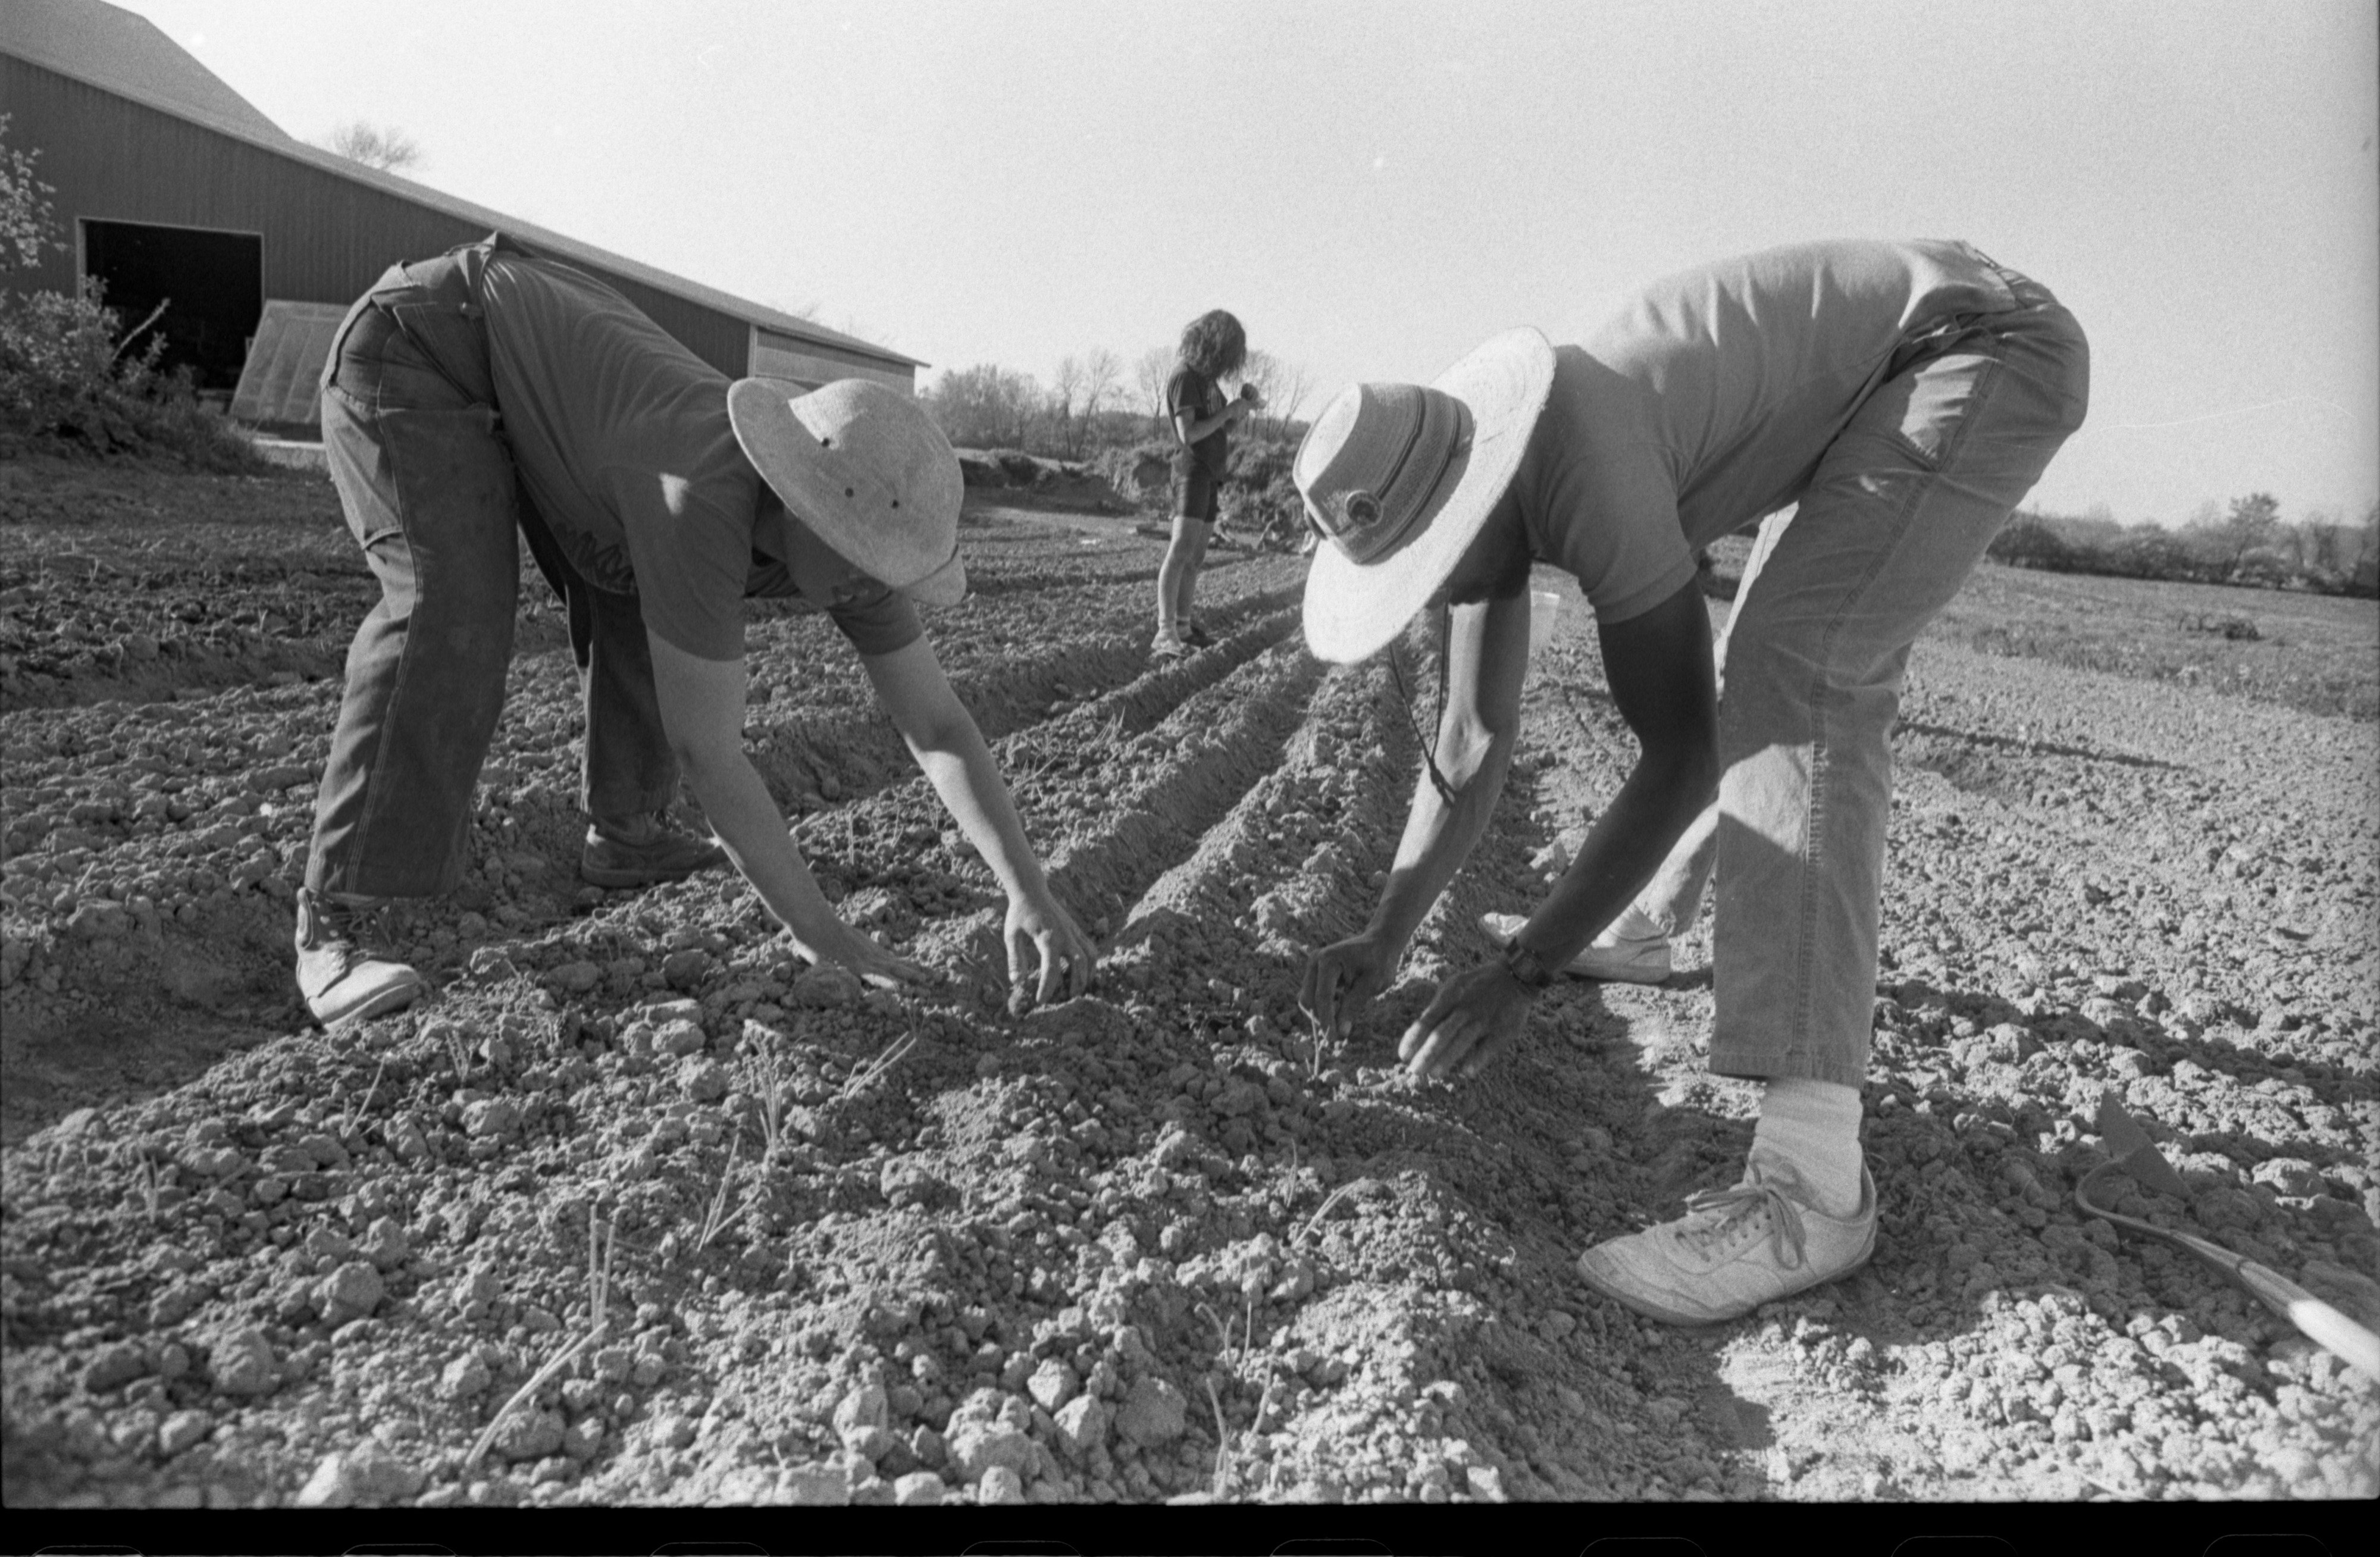 Planting Seeds At Community Farm, May 1988 image